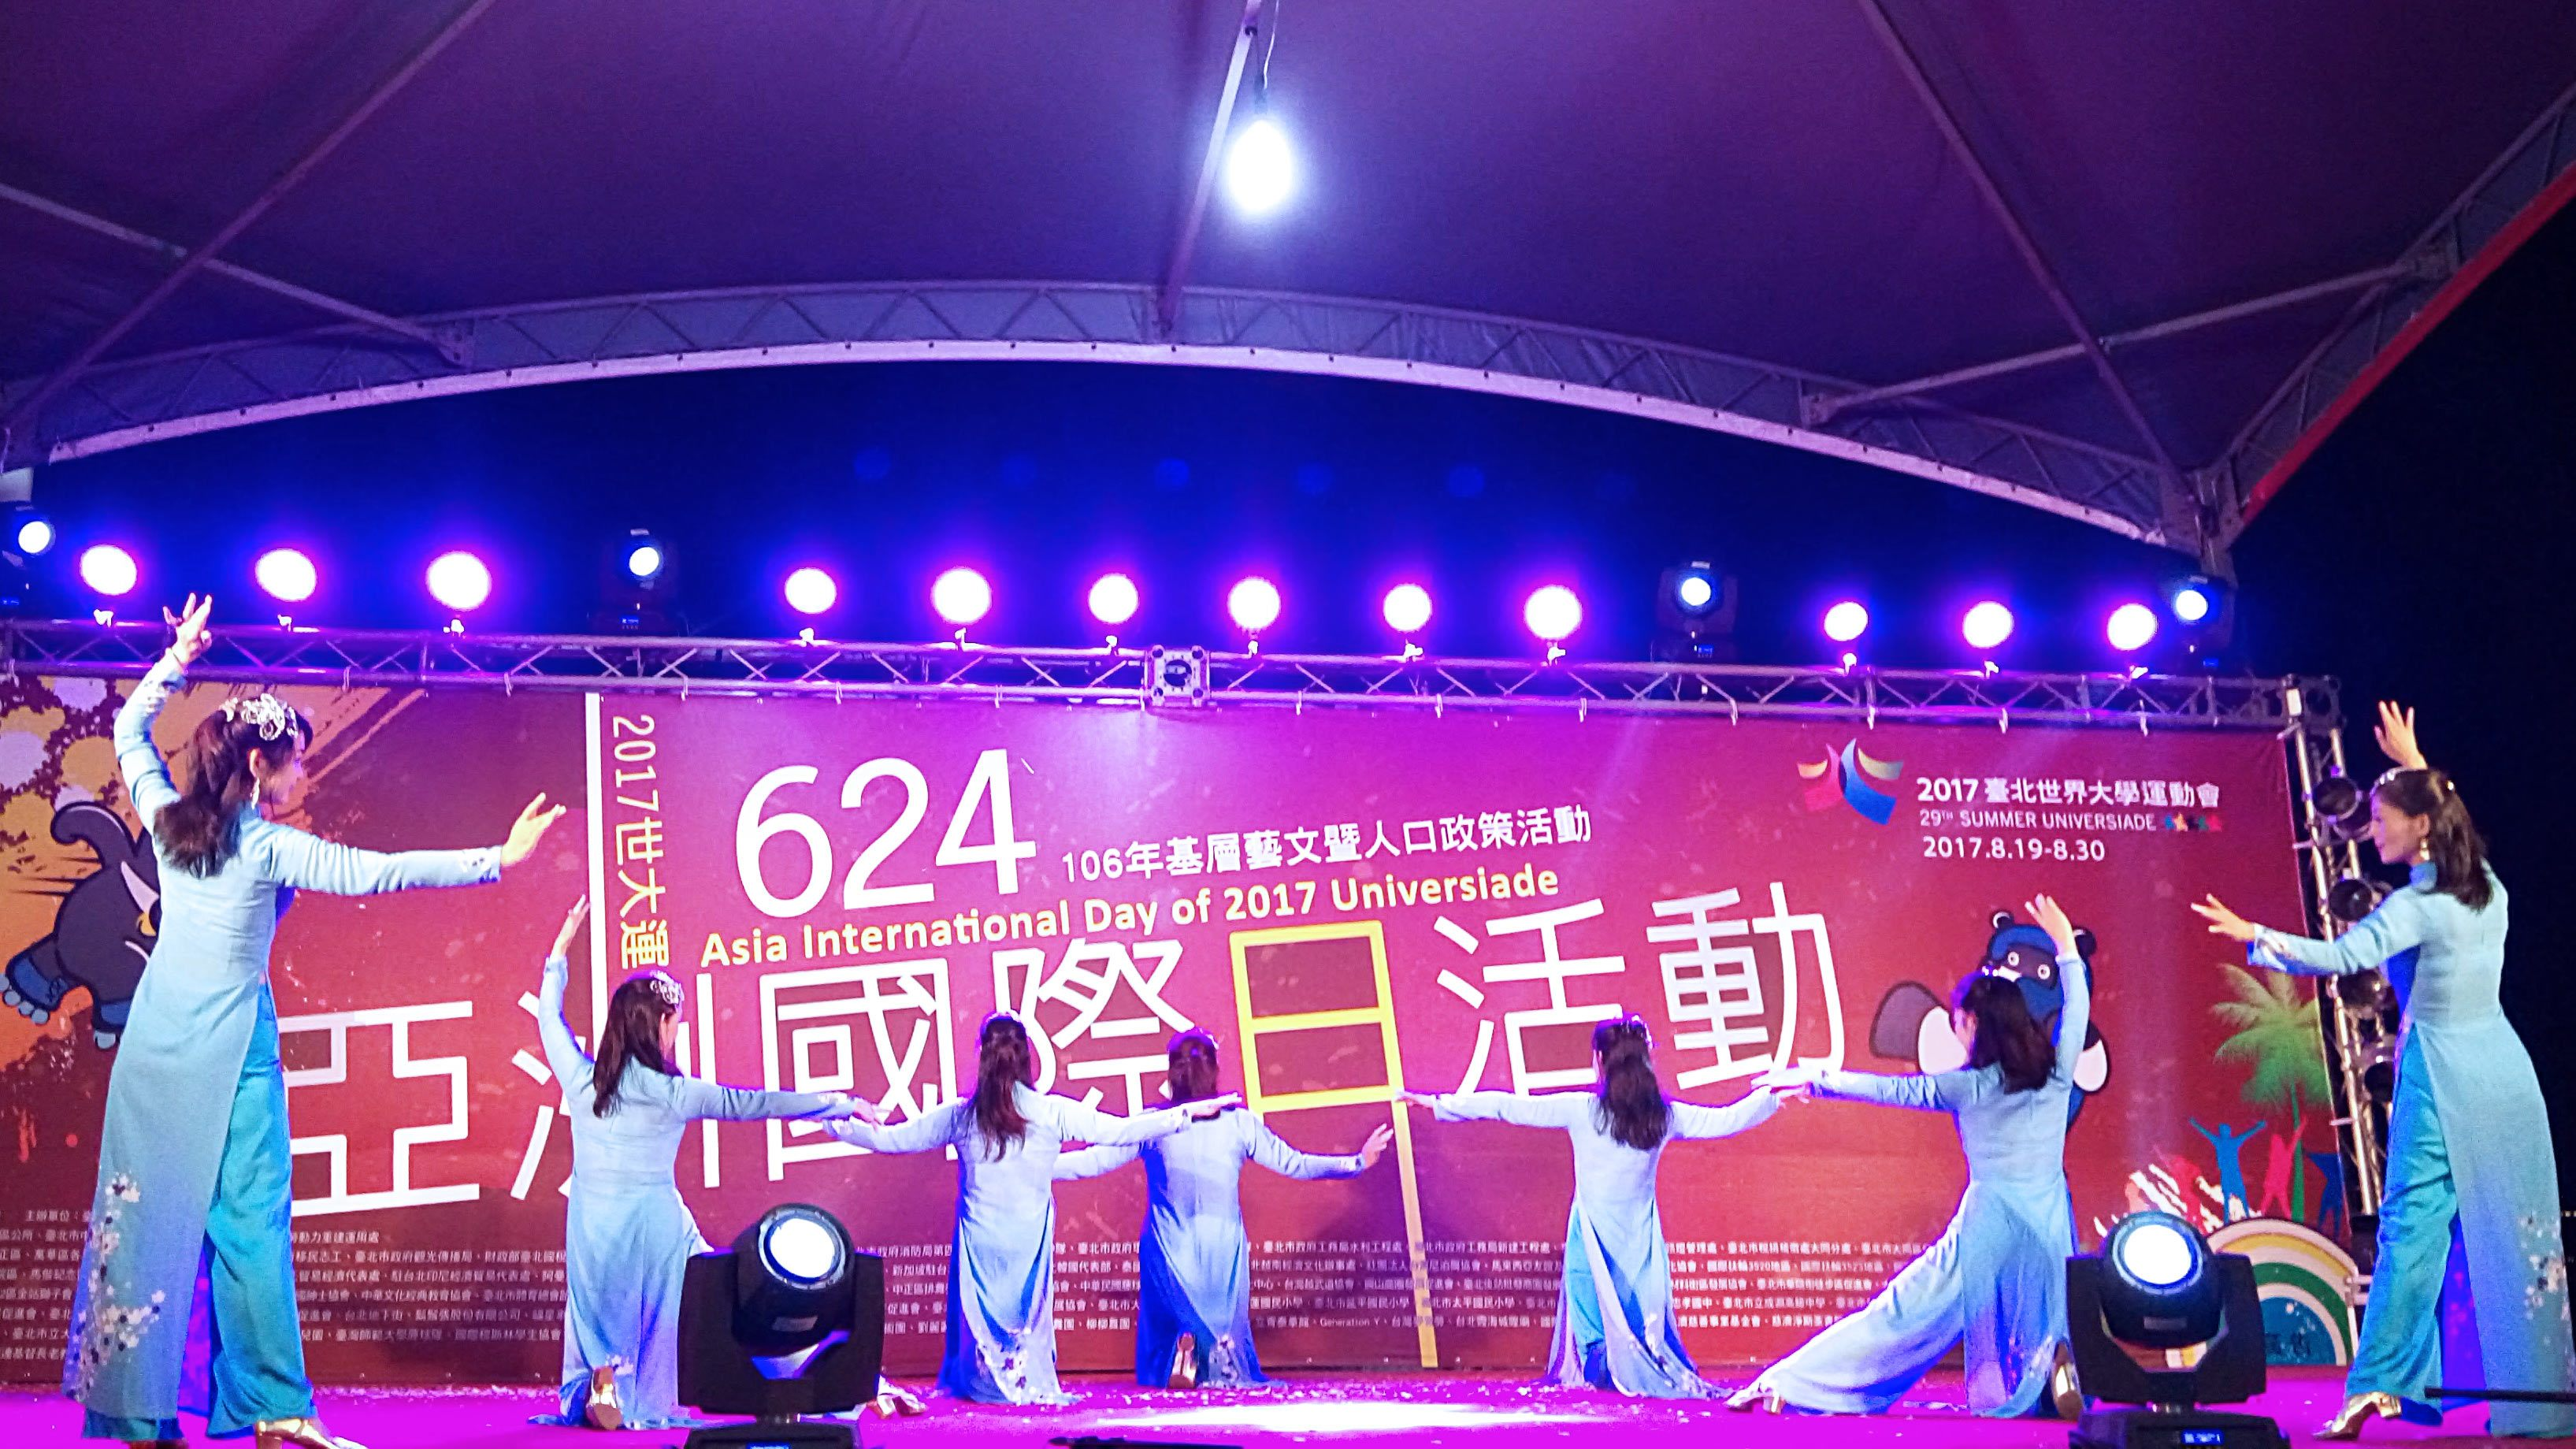 JW Dance Group put on a performance at Asia International Day 2017